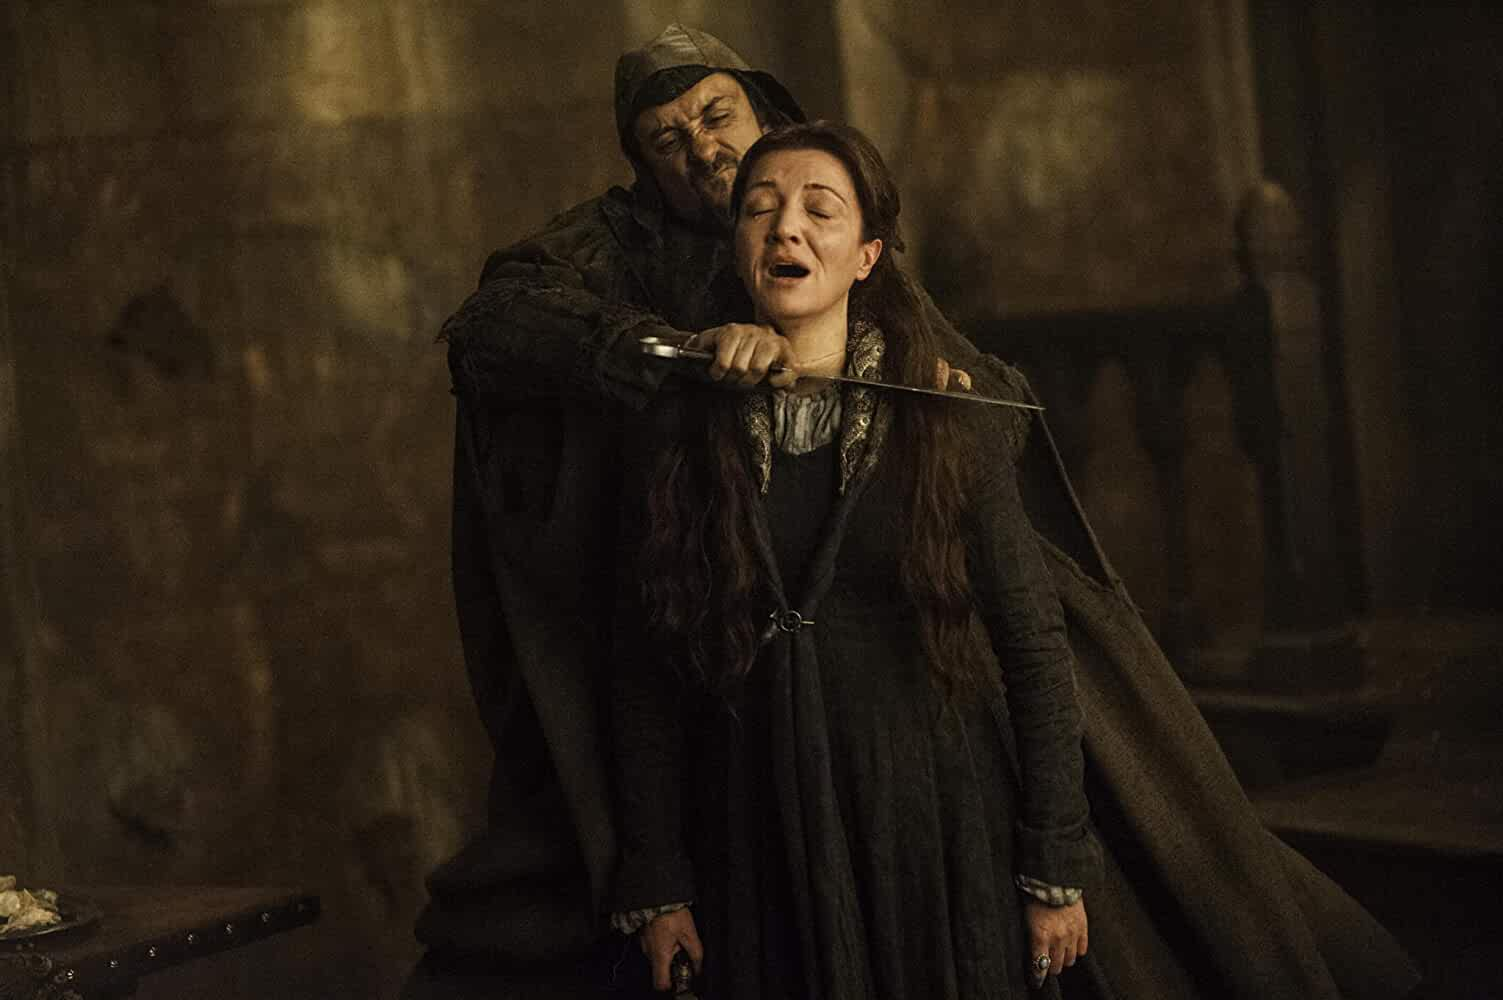 Michelle Fairley and Tim Plester in Game of Thrones (2011)